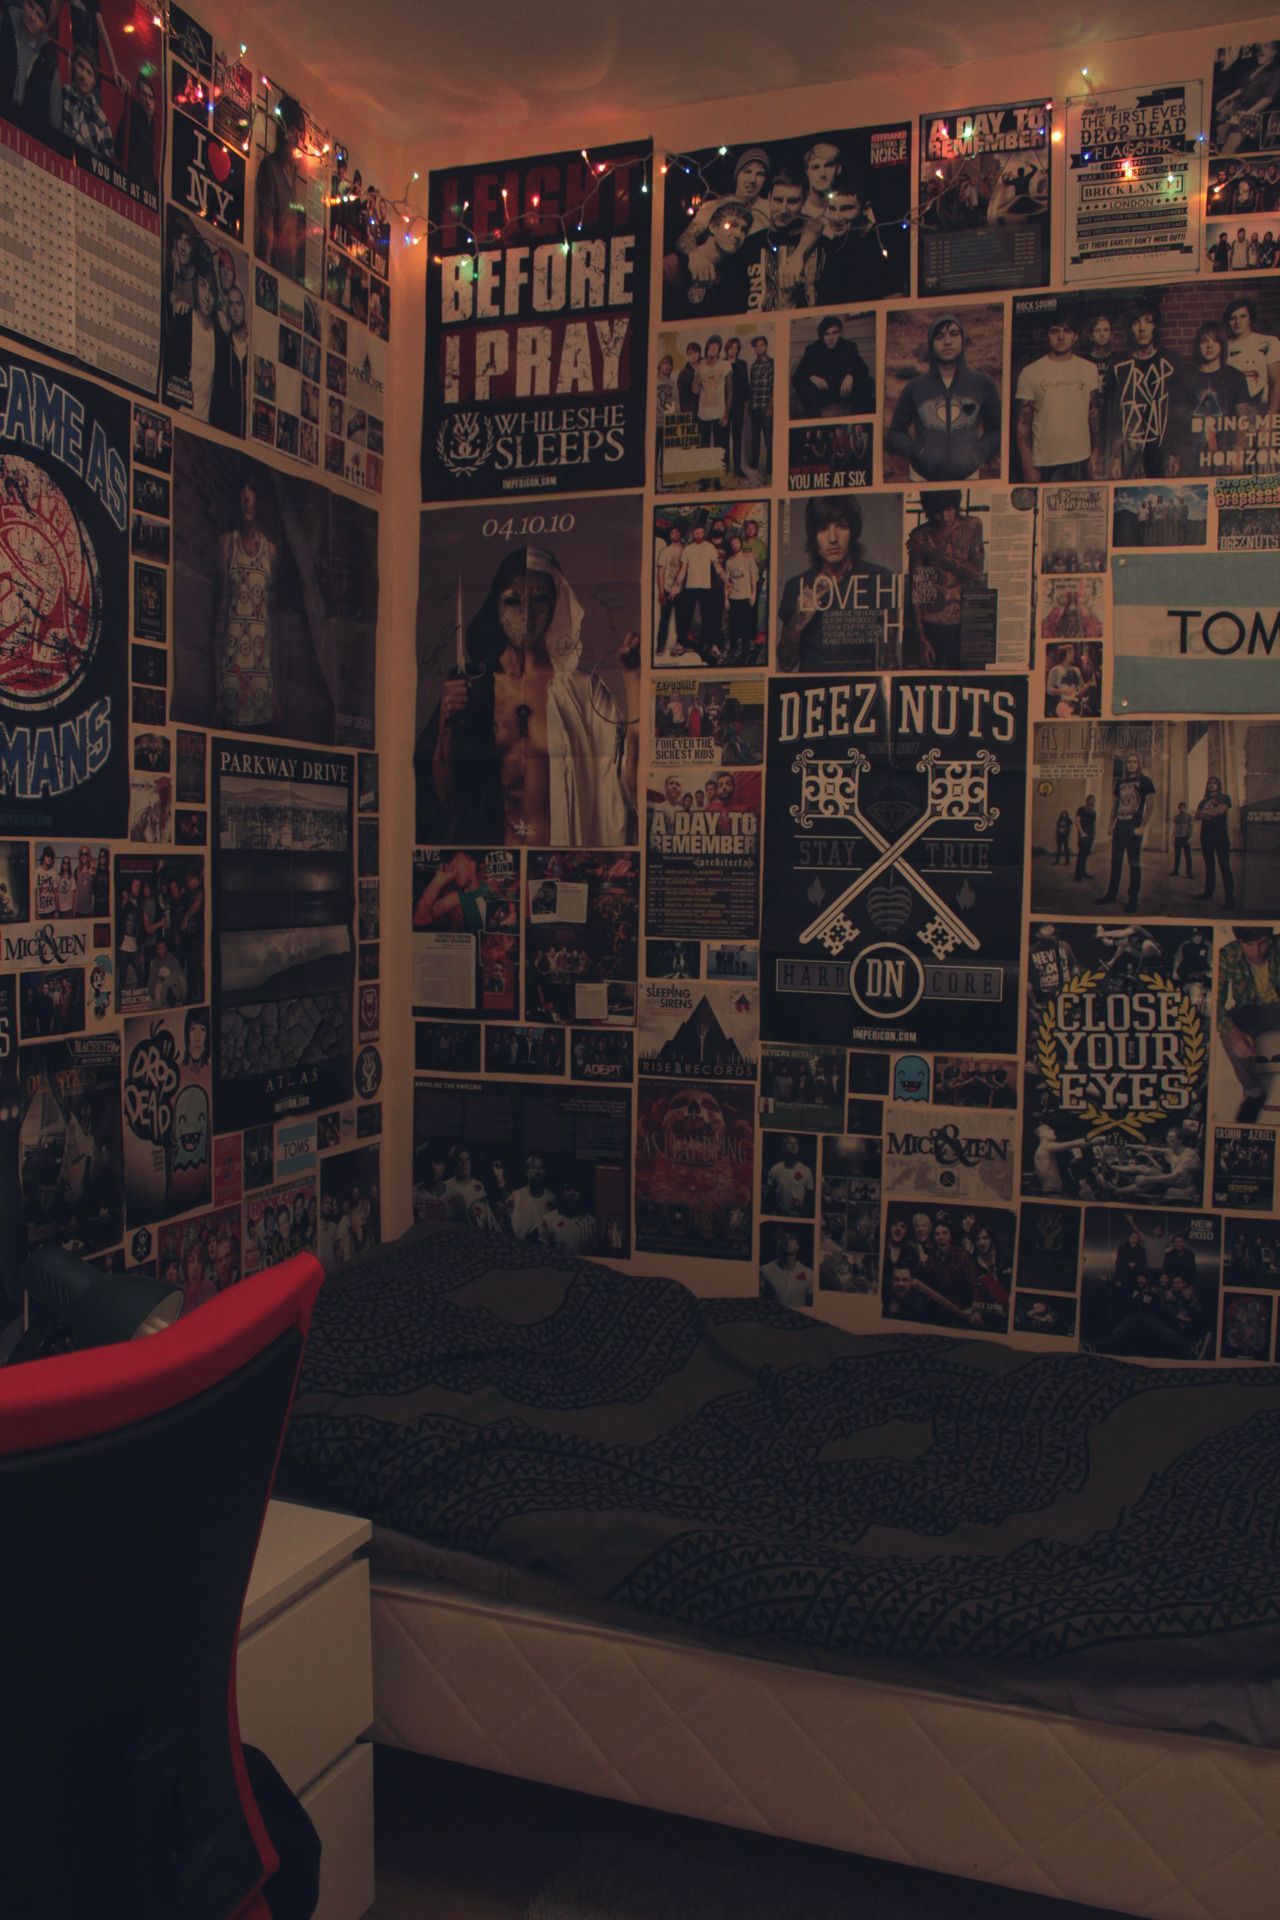 Room full of posters emo download full image new room Decorating walls with posters